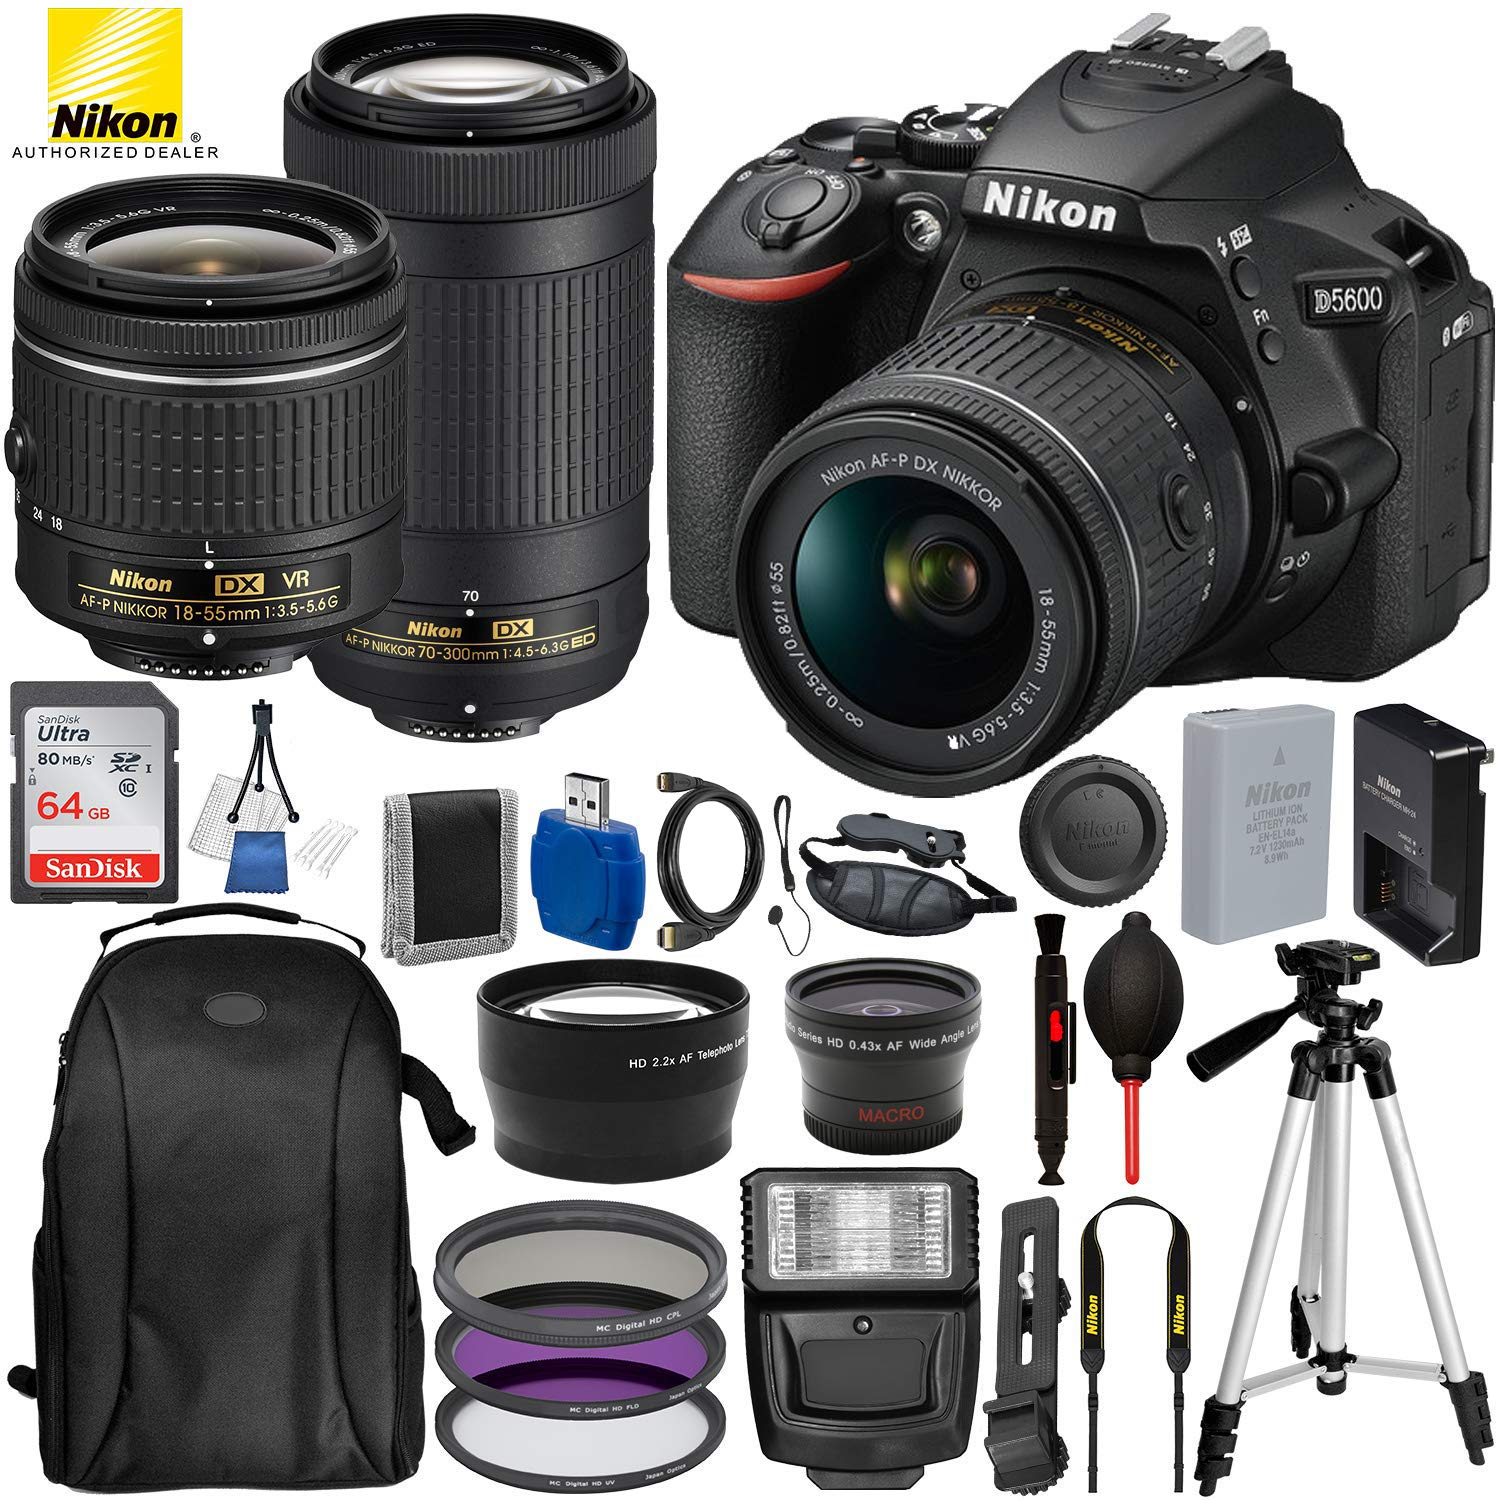 Nikon D5600 DSLR Camera with 18-55mm and 70-300mm Lenses and 15PC Accessory Bundle - Includes SanDisk Ultra 64GB SDHC Memory Card + Digital Slave Flash + 3PC Filter Kit + 50'' Tripod and More by Nikon